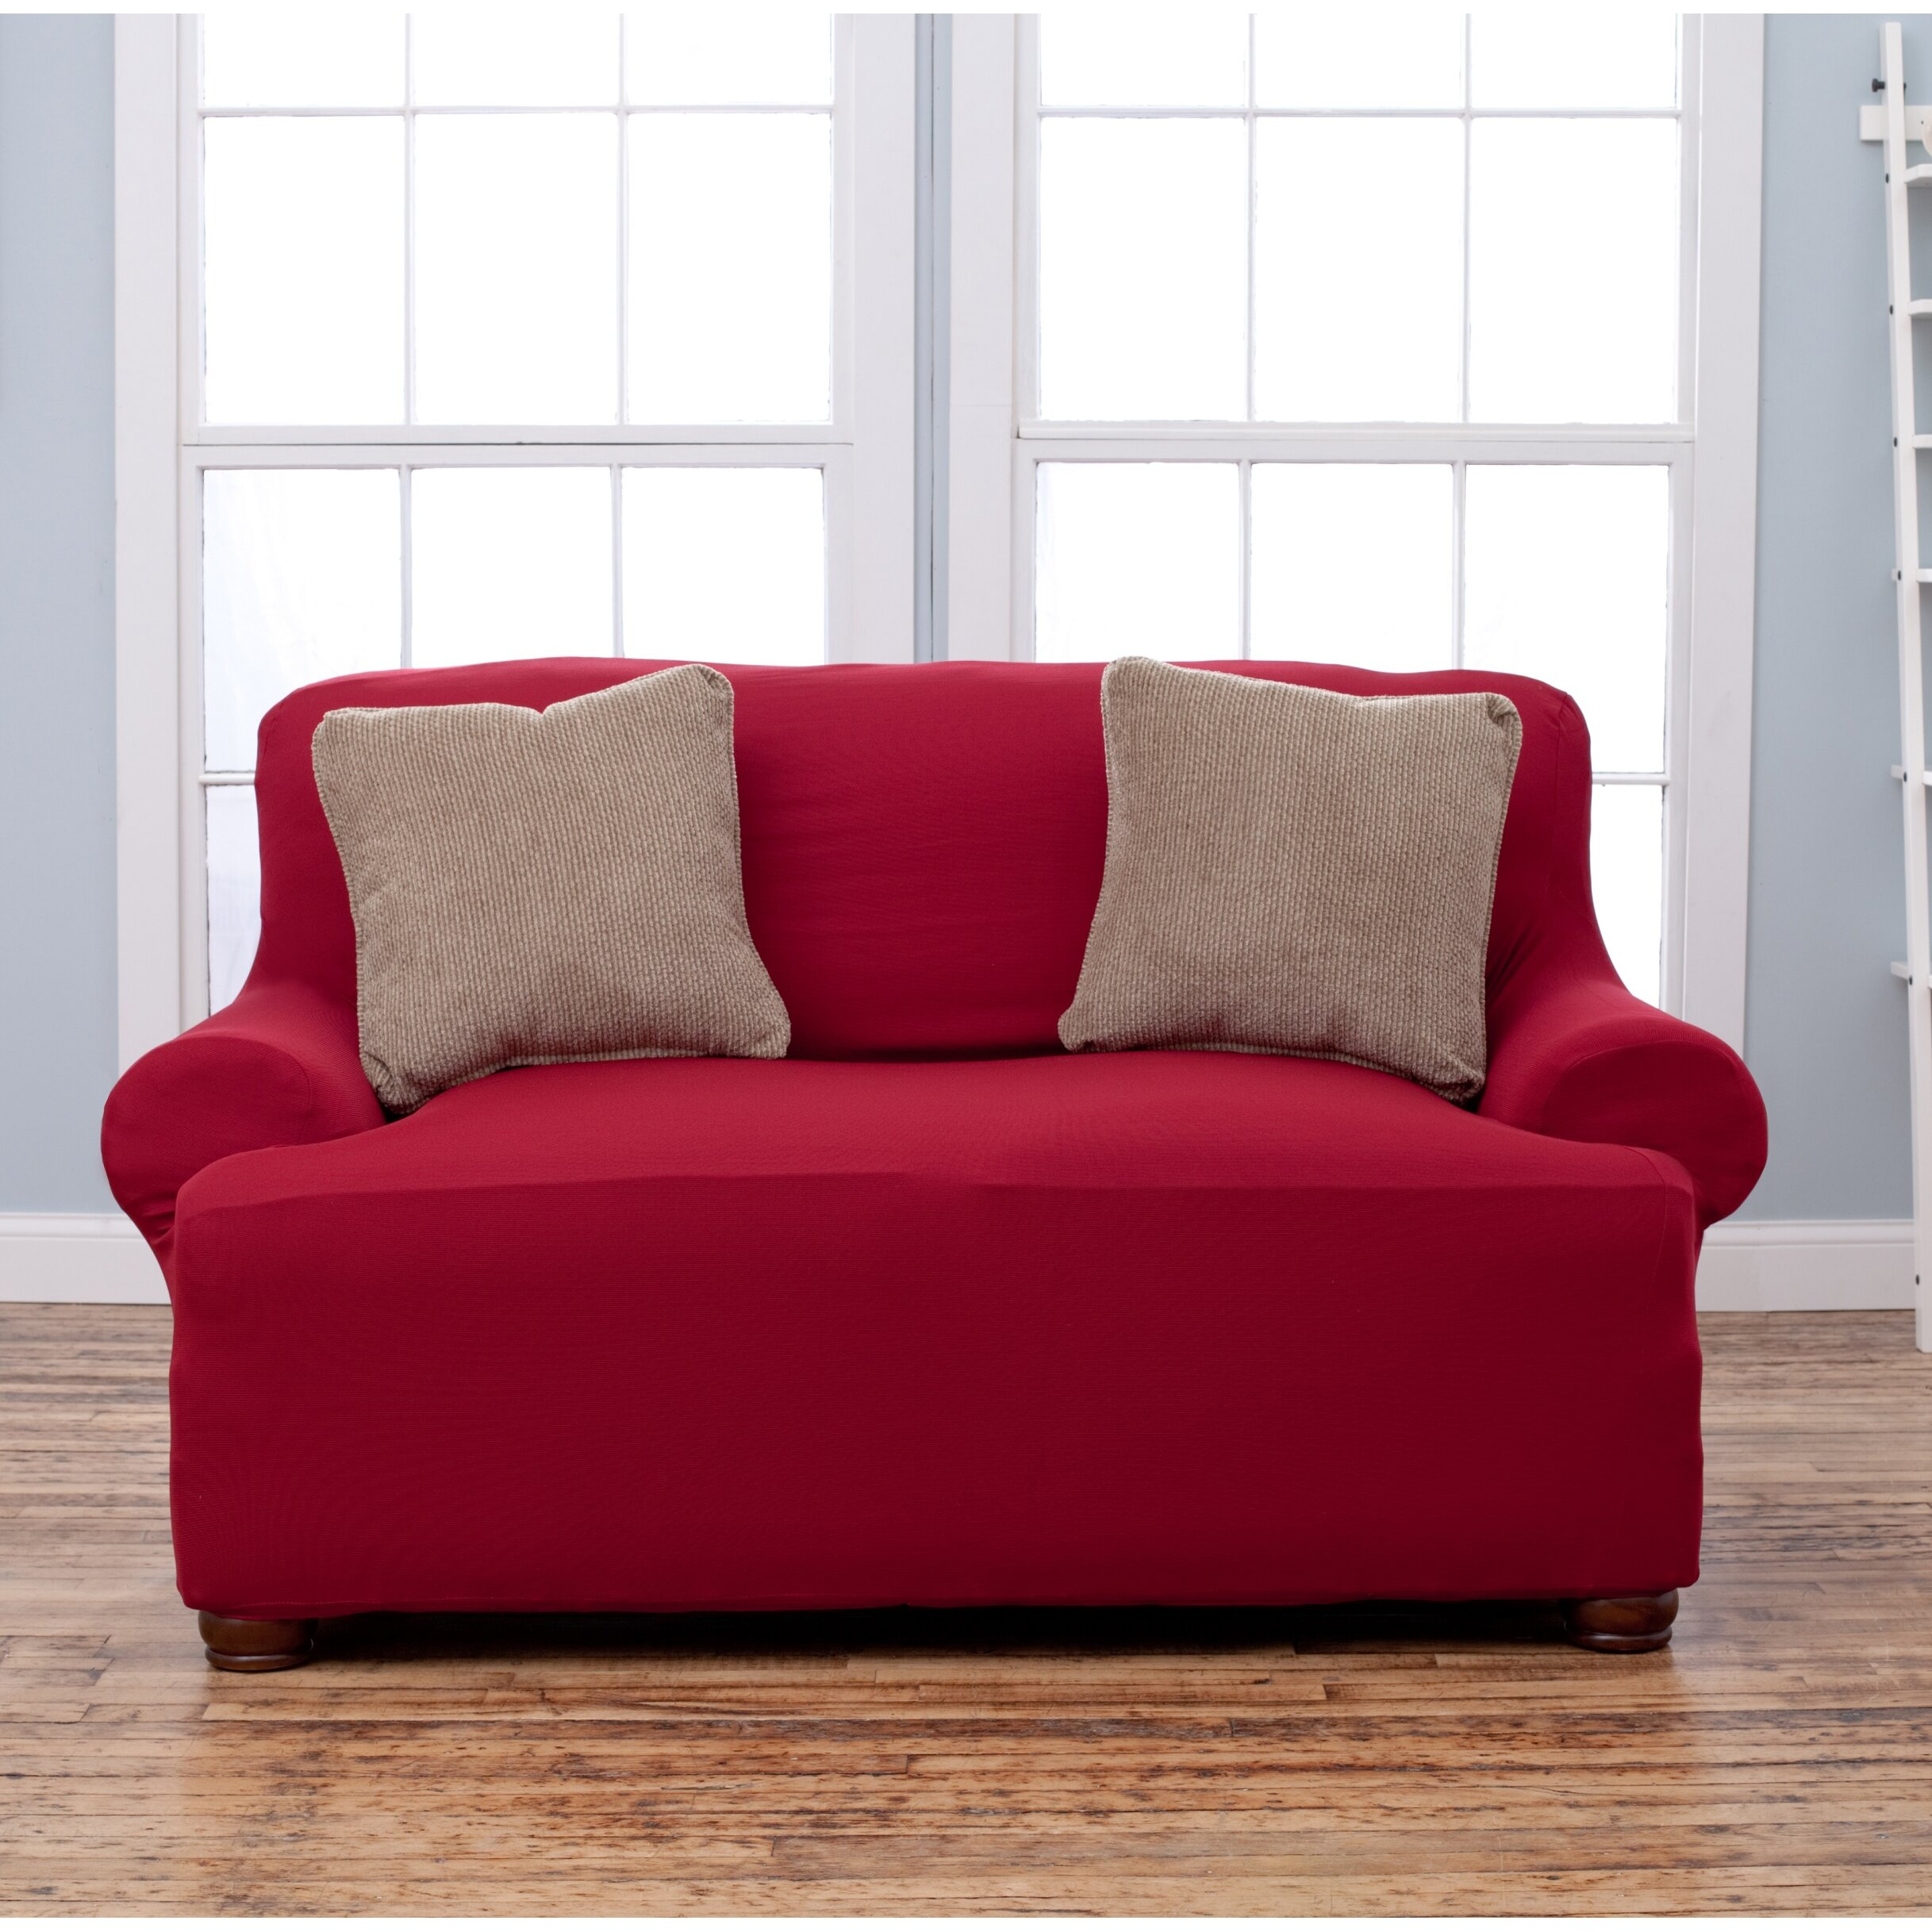 Home fashion design lucia t cushion loveseat slipcover for Slip sofa covers home style